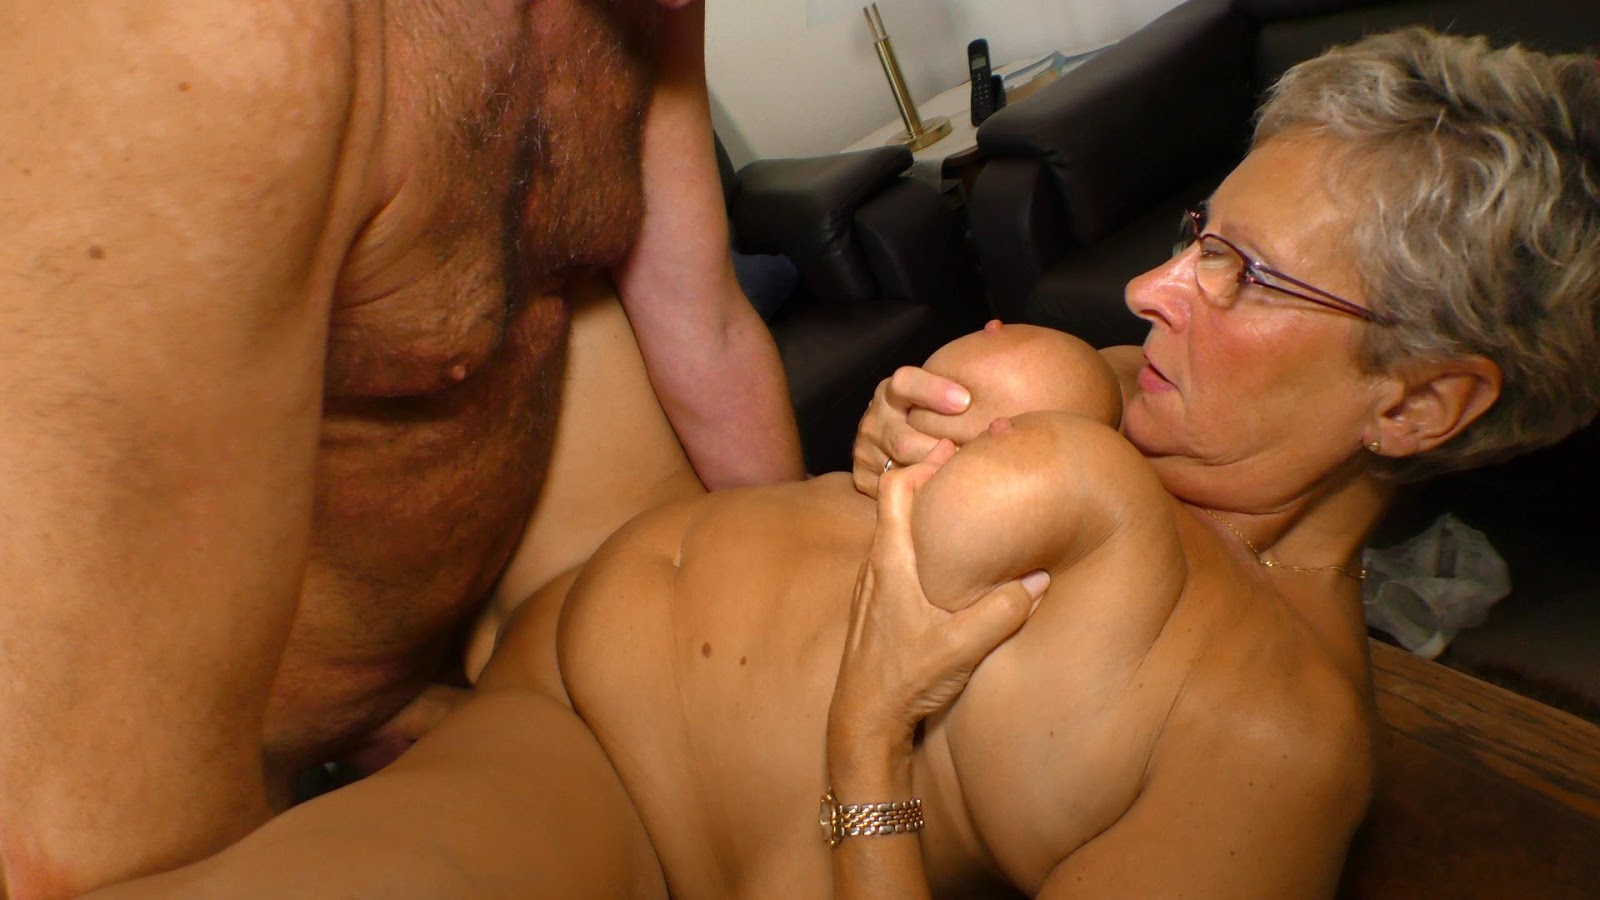 grannies-with-male-female-sex-organs-clips-freeporn-rihanna-nude-pics